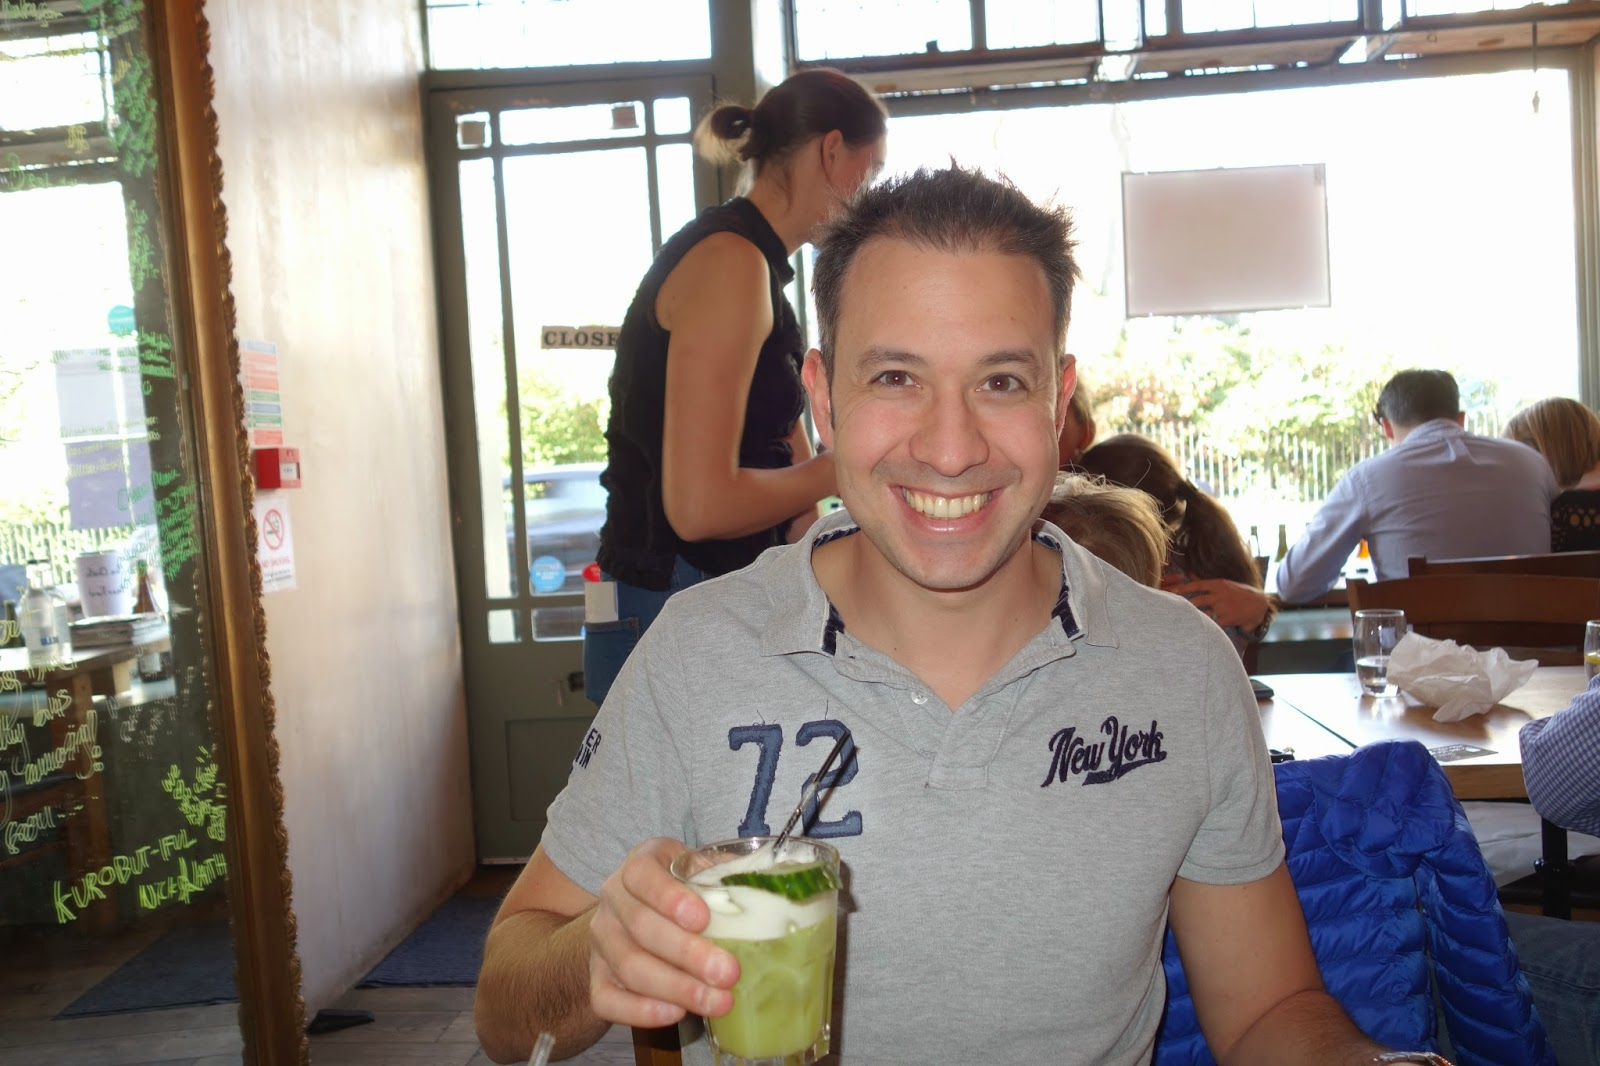 Man holds green drink